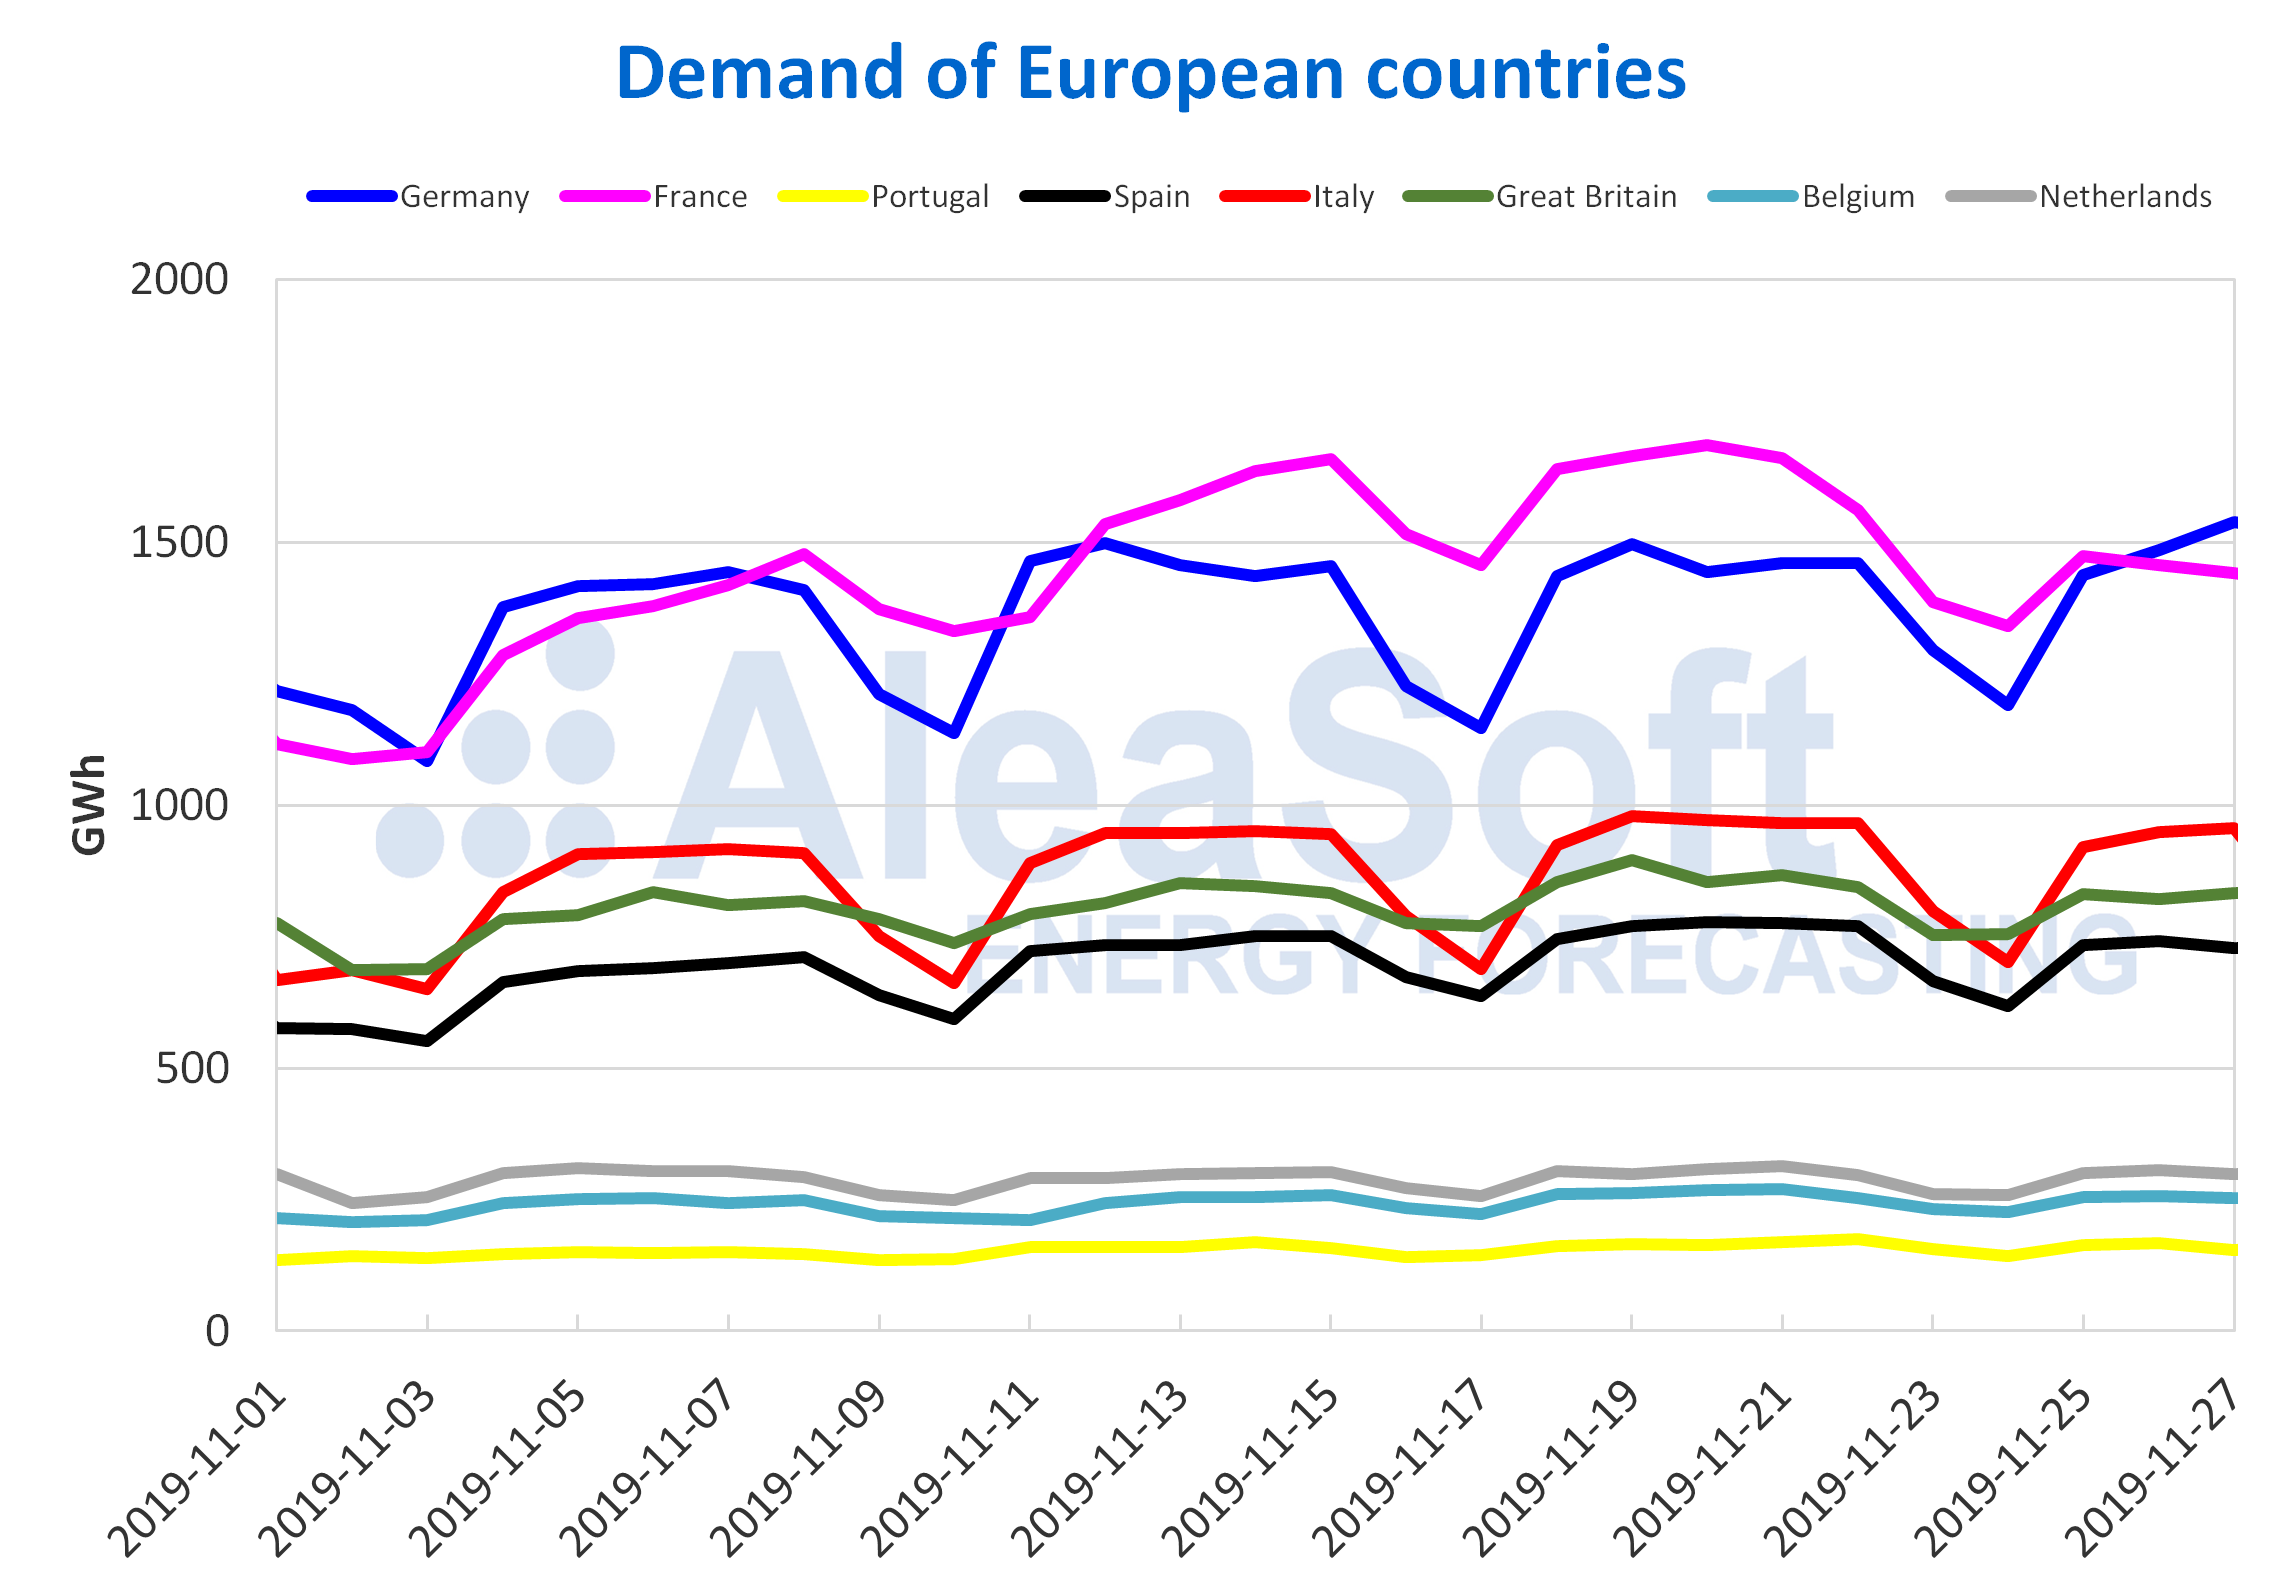 AleaSoft - Demand of European countries